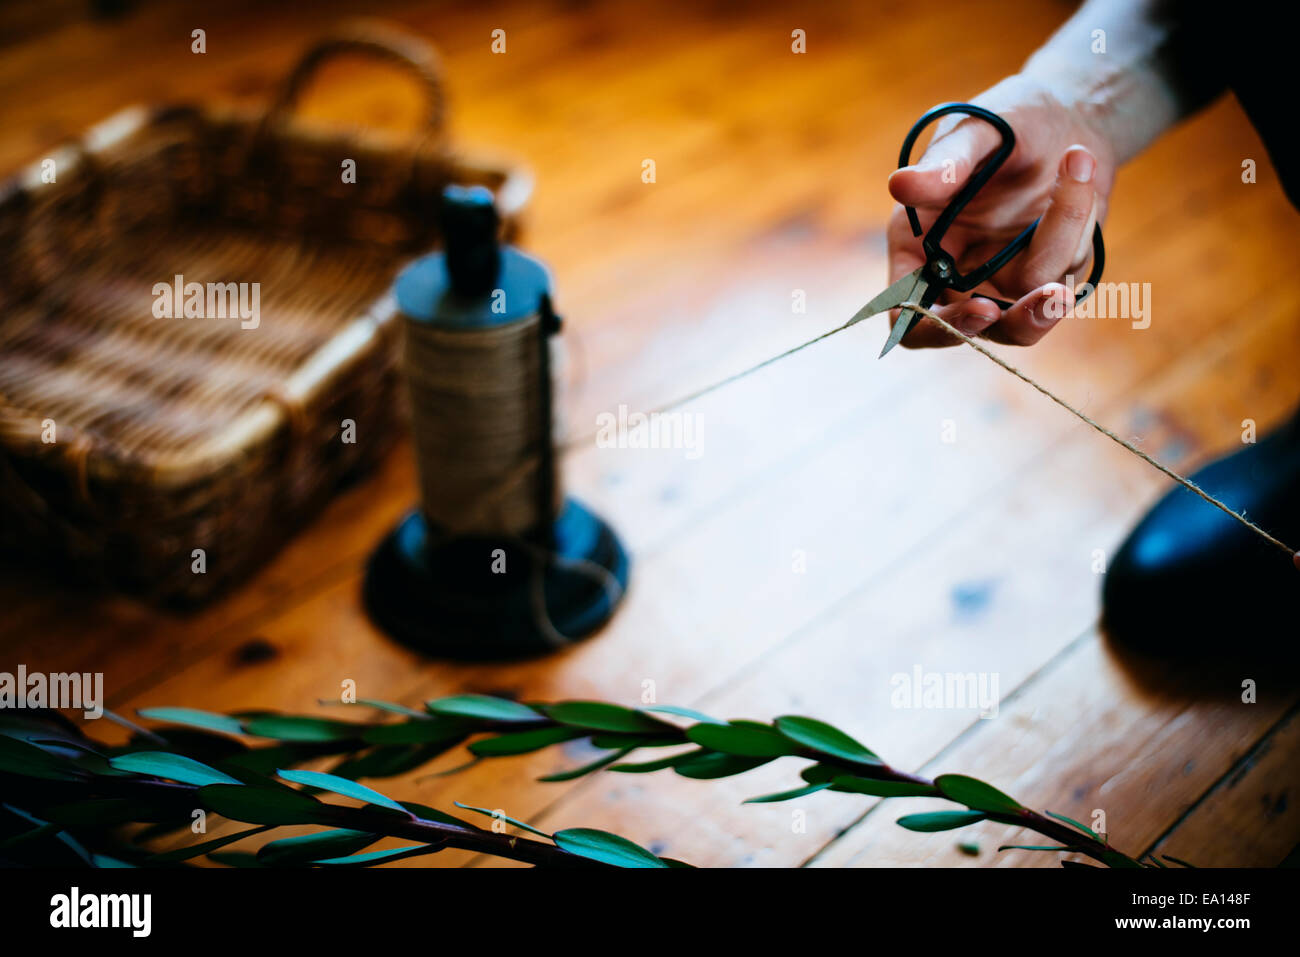 Woman working on plant cuttings - Stock Image